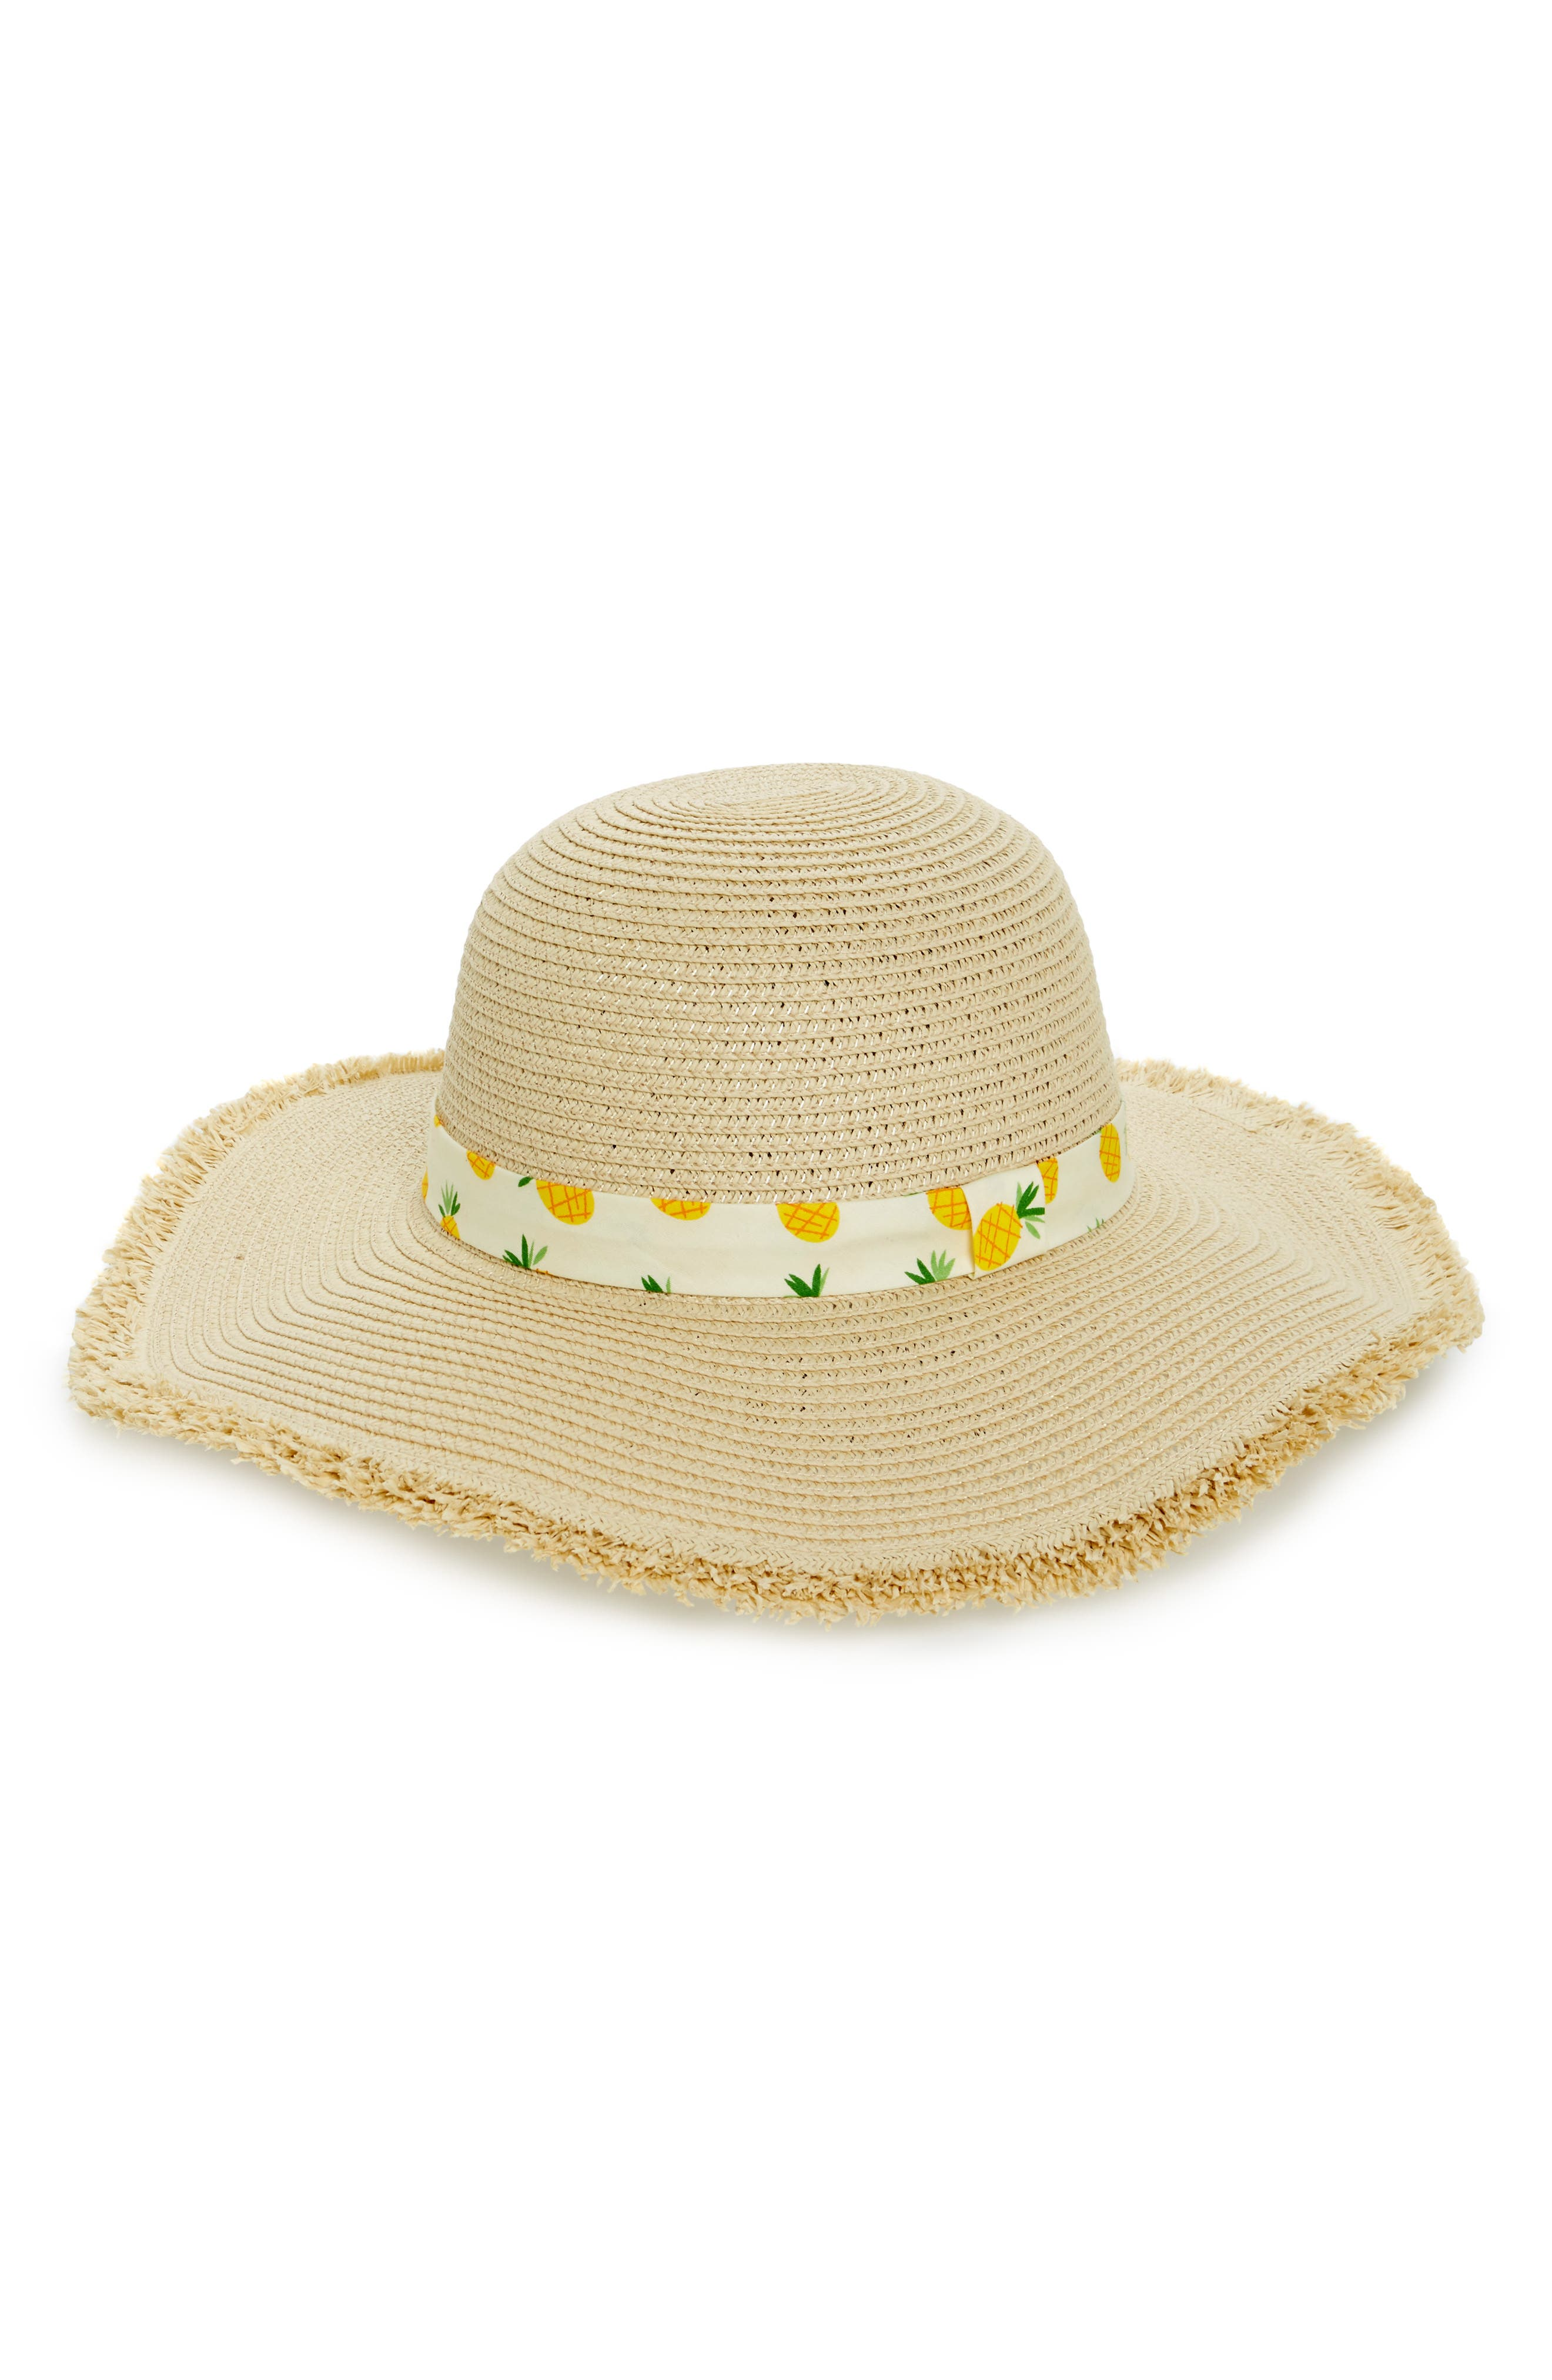 BP. Novelty Band Floppy Straw Hat